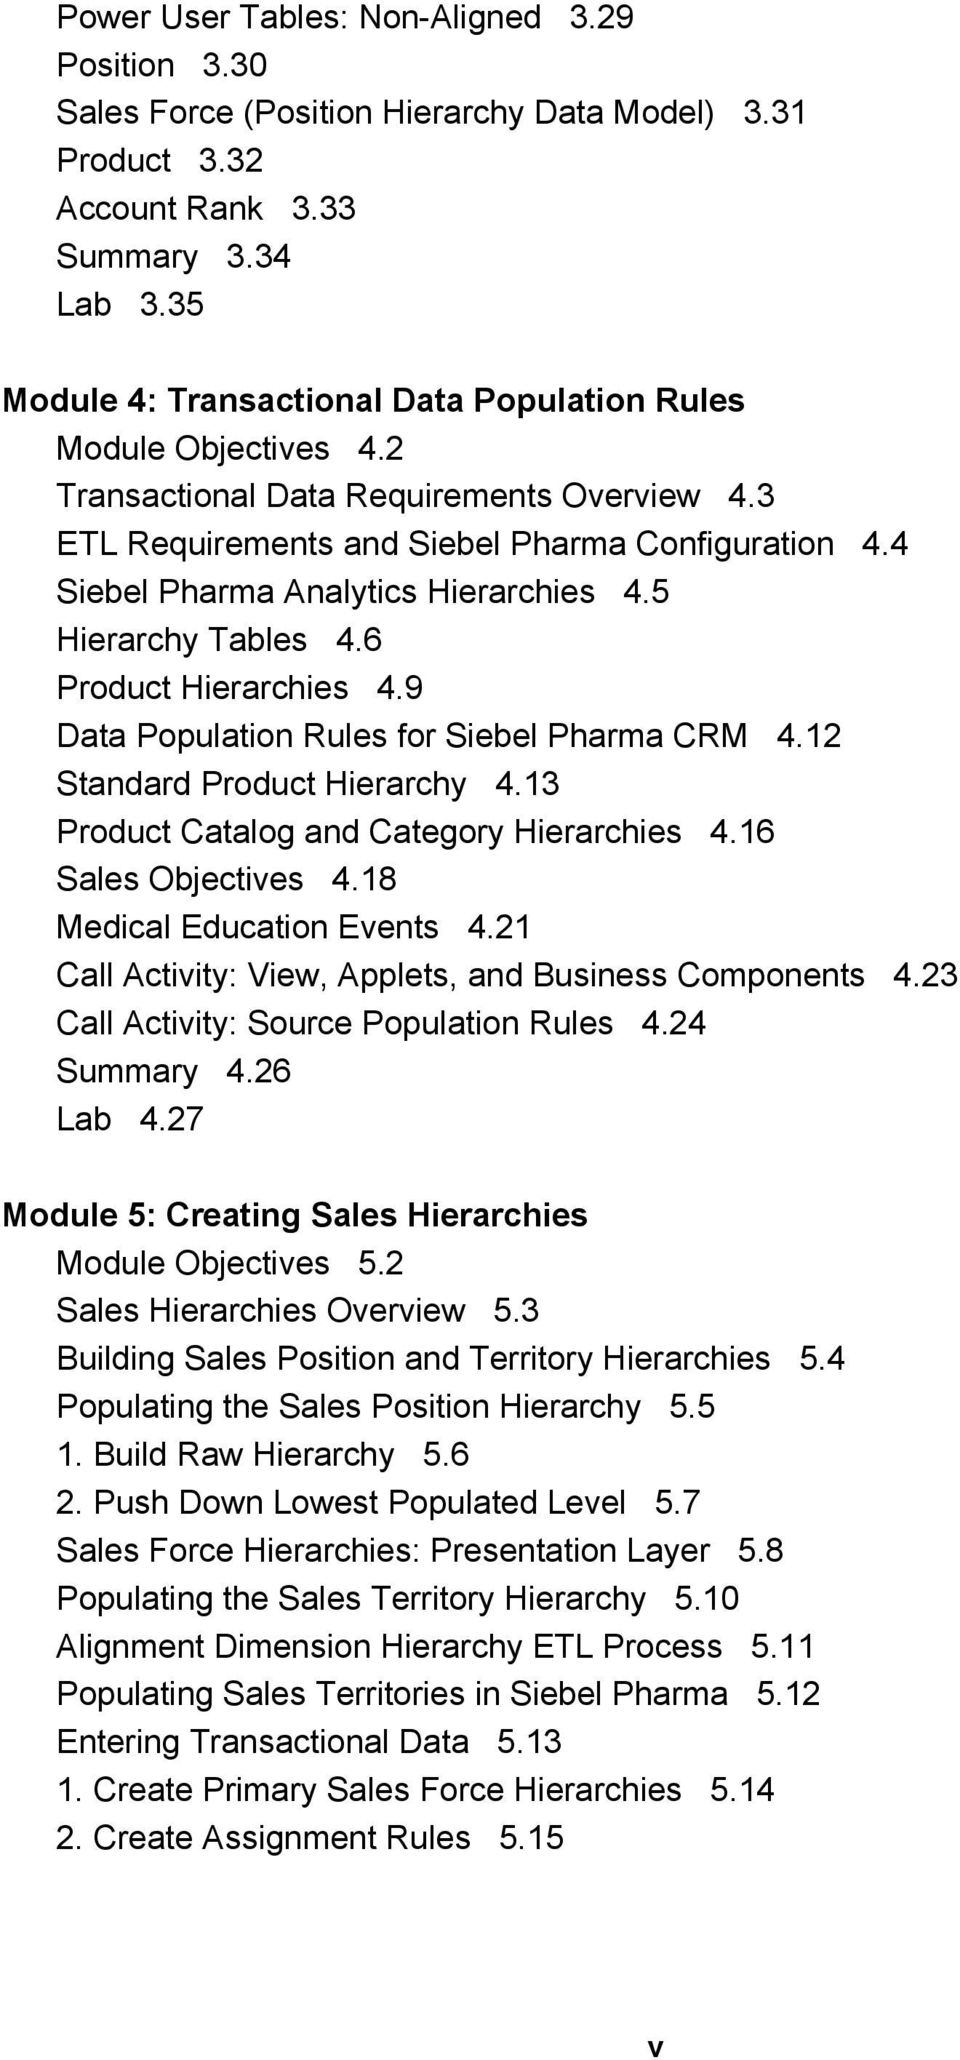 4 Siebel Pharma Analytics Hierarchies 4.5 Hierarchy Tables 4.6 Product Hierarchies 4.9 Data Population Rules for Siebel Pharma CRM 4.12 Standard Product Hierarchy 4.